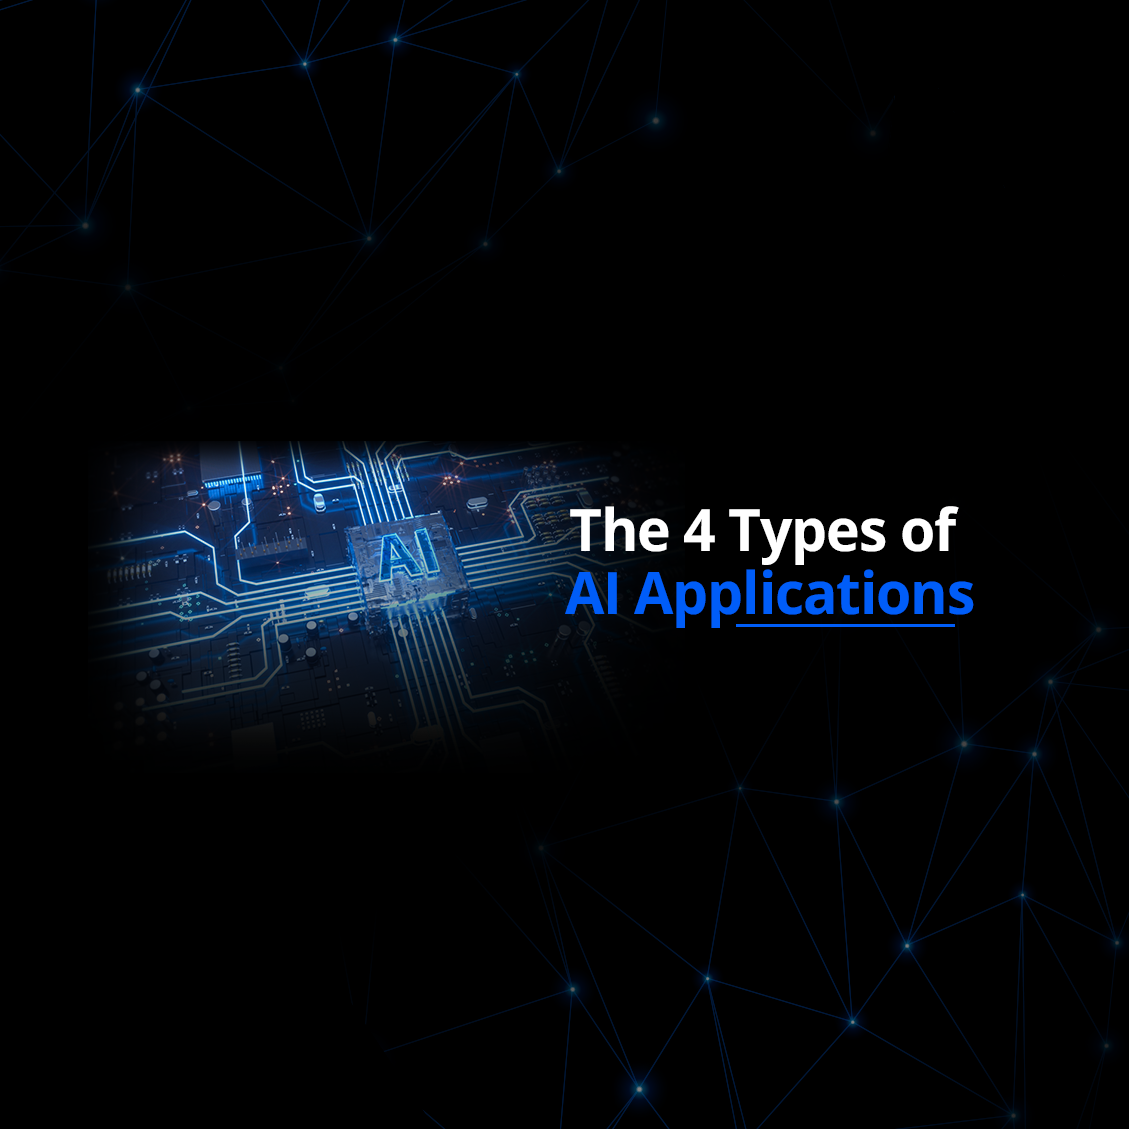 The 4 Types of AI Applications